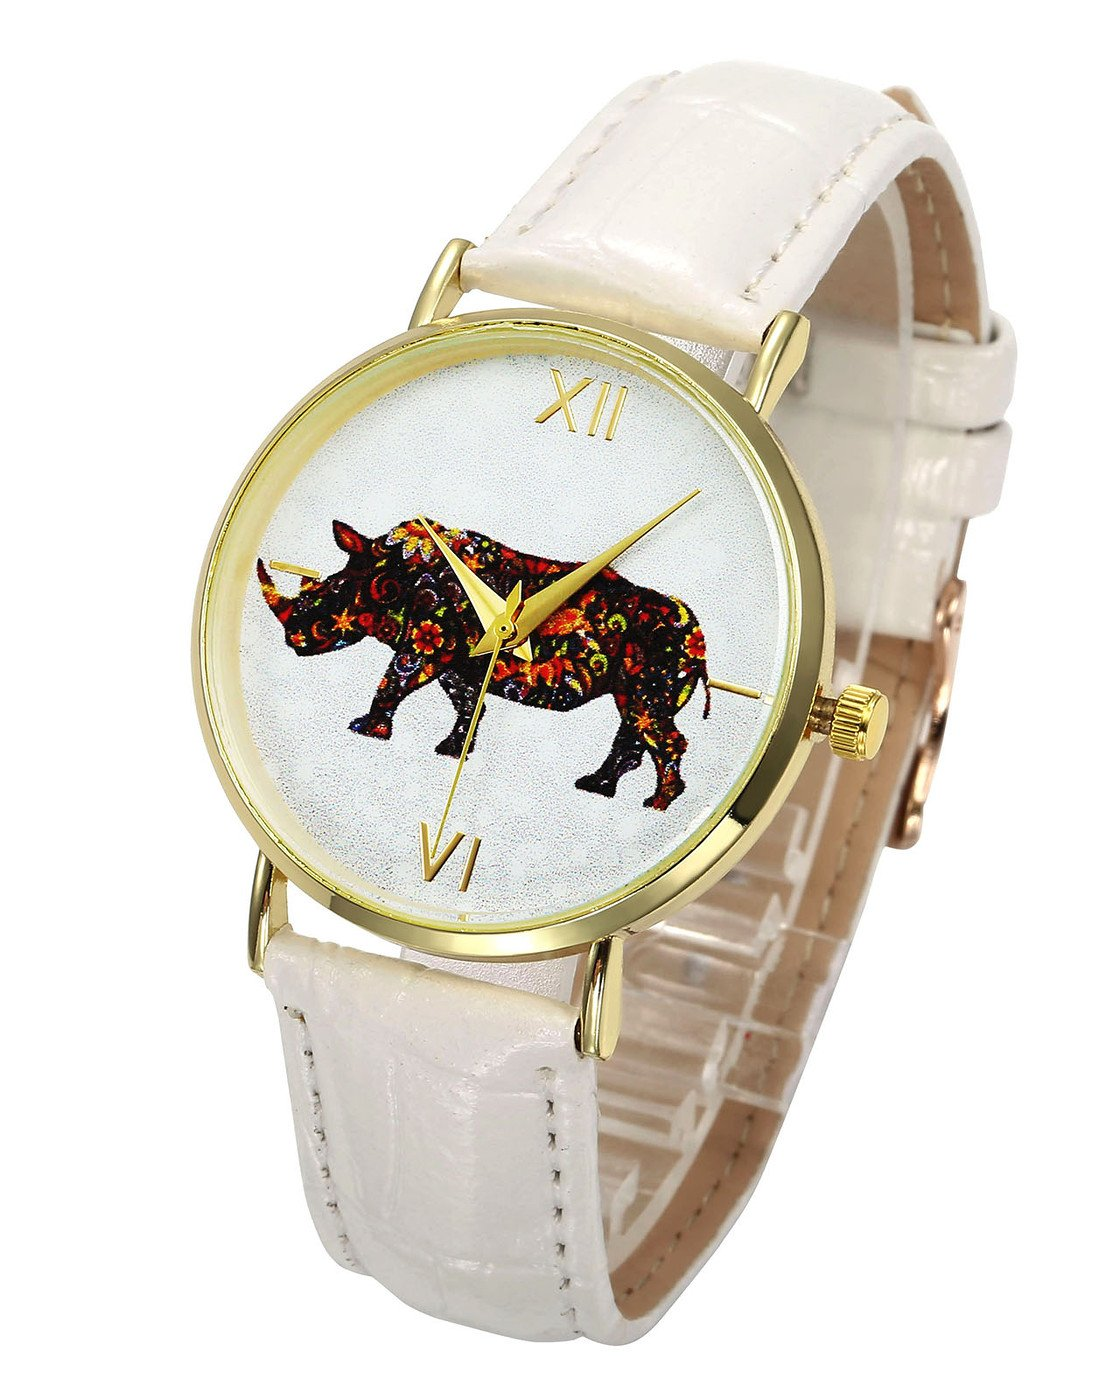 Top Plaza Cute Lovely Colorful Animal Pattern Dial PU Leather Band Dress Analog Quatz Wrist Watch Golden Case No Number Casual Watches for Womens Ladies(White-Rhinoceros)